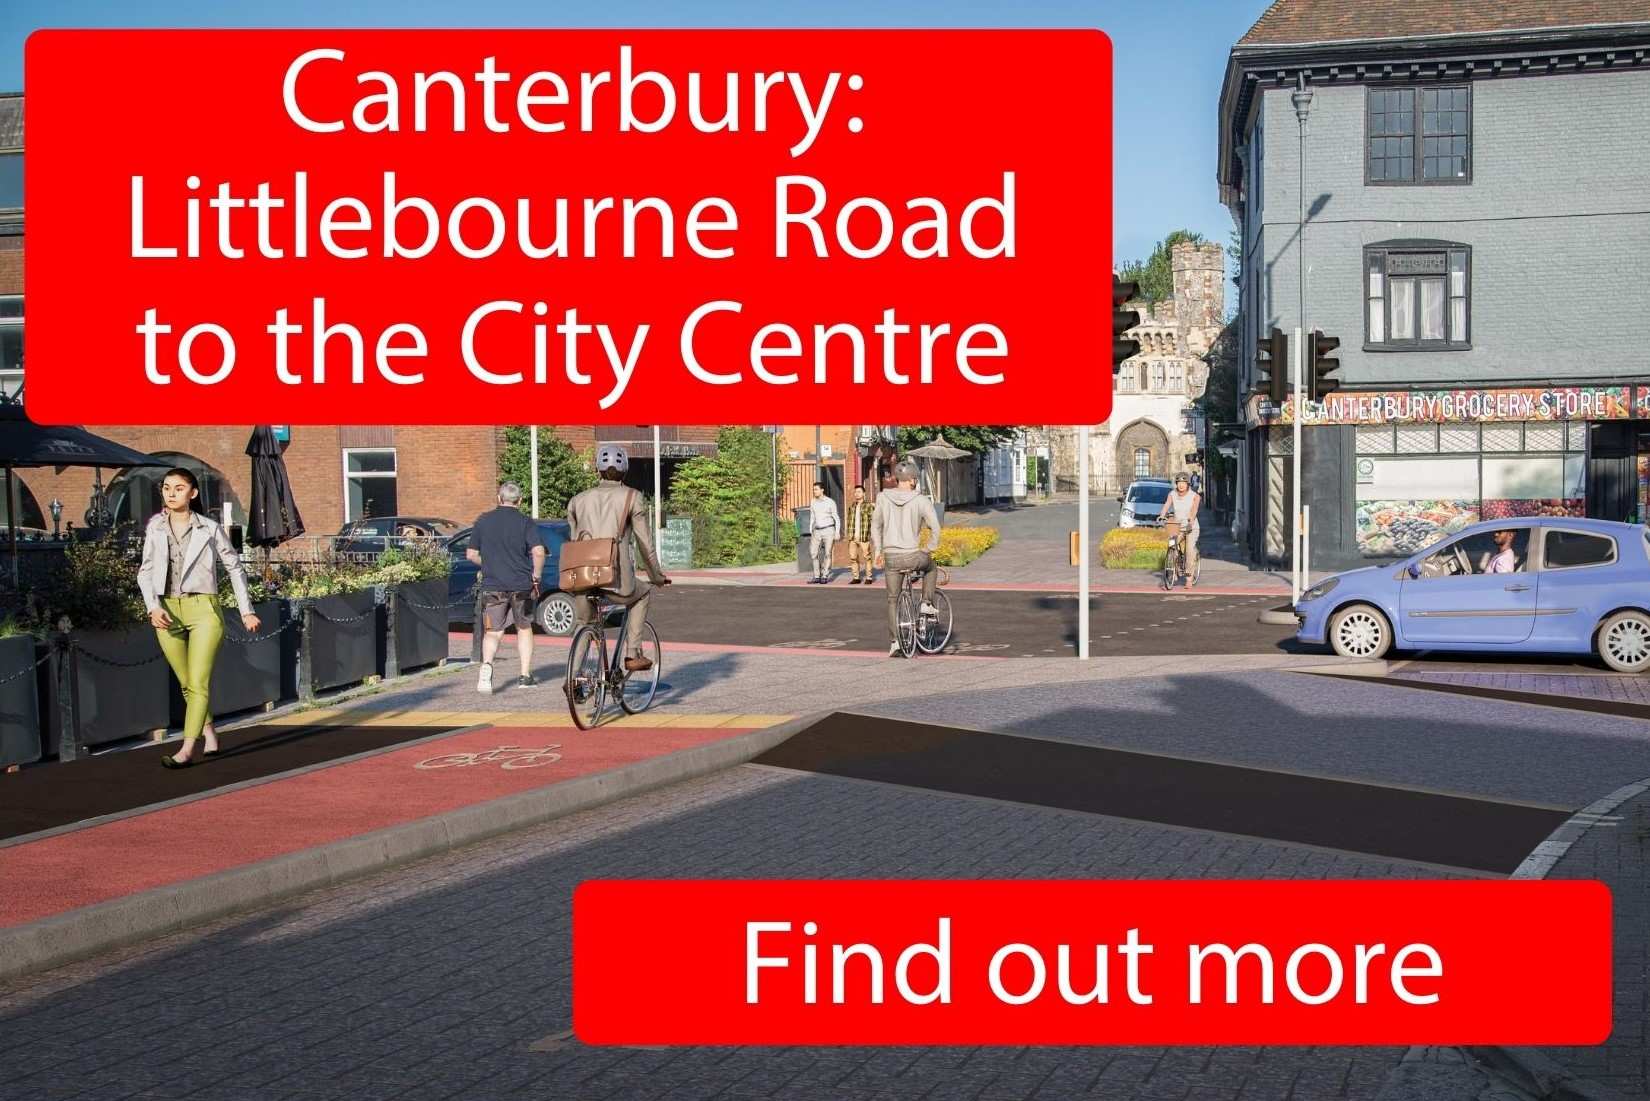 Canterbury: Littlebourne Road to the City Centre - click here to find out more.